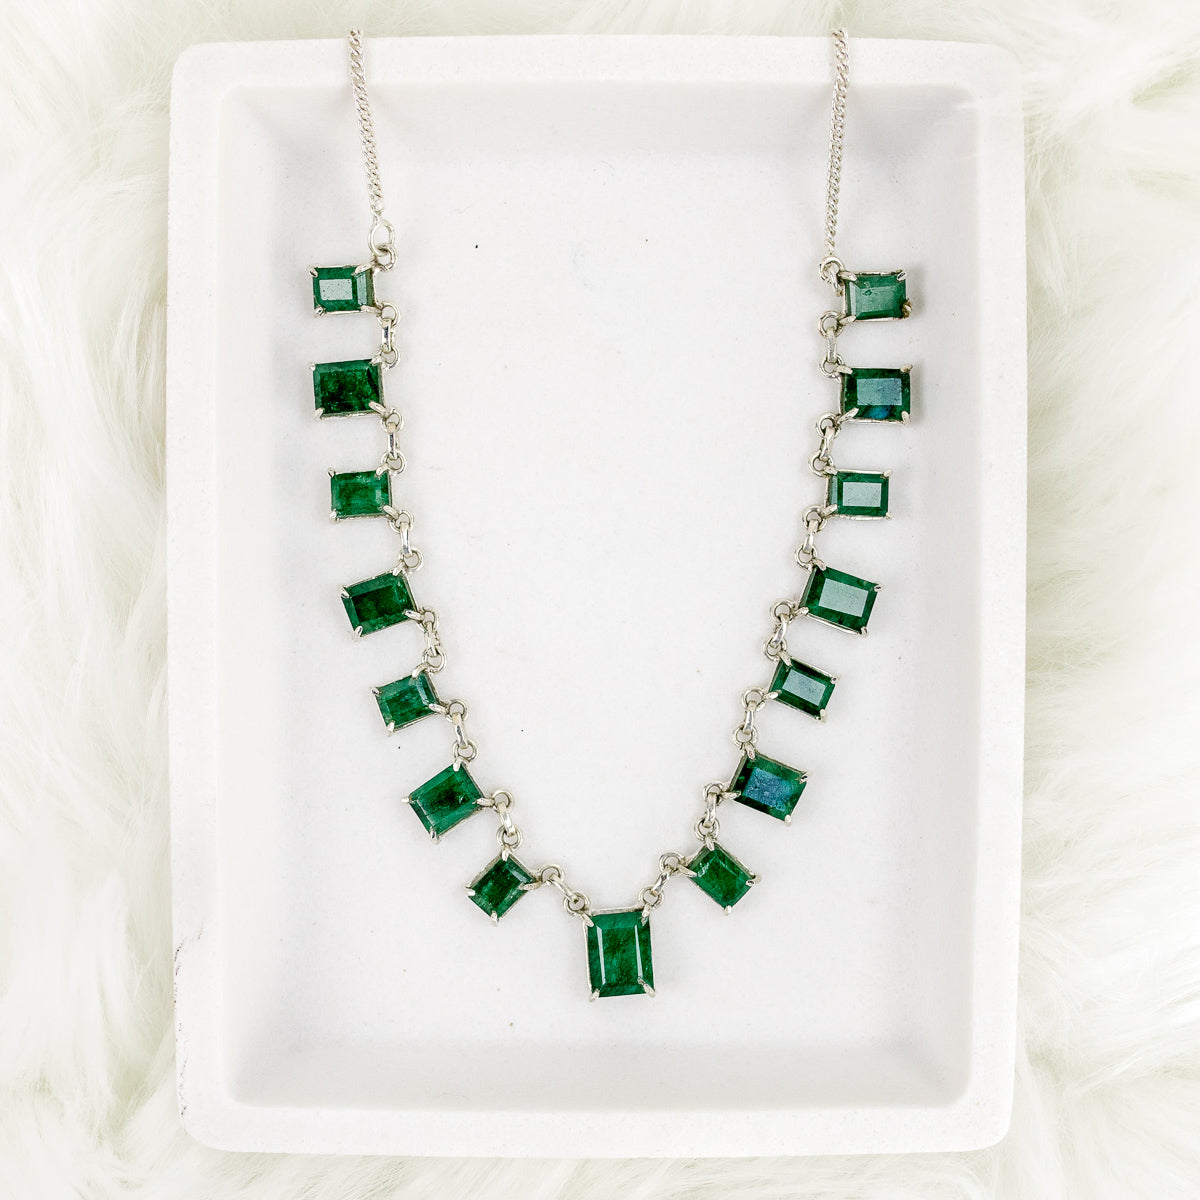 Emerald Cut Statement Necklace